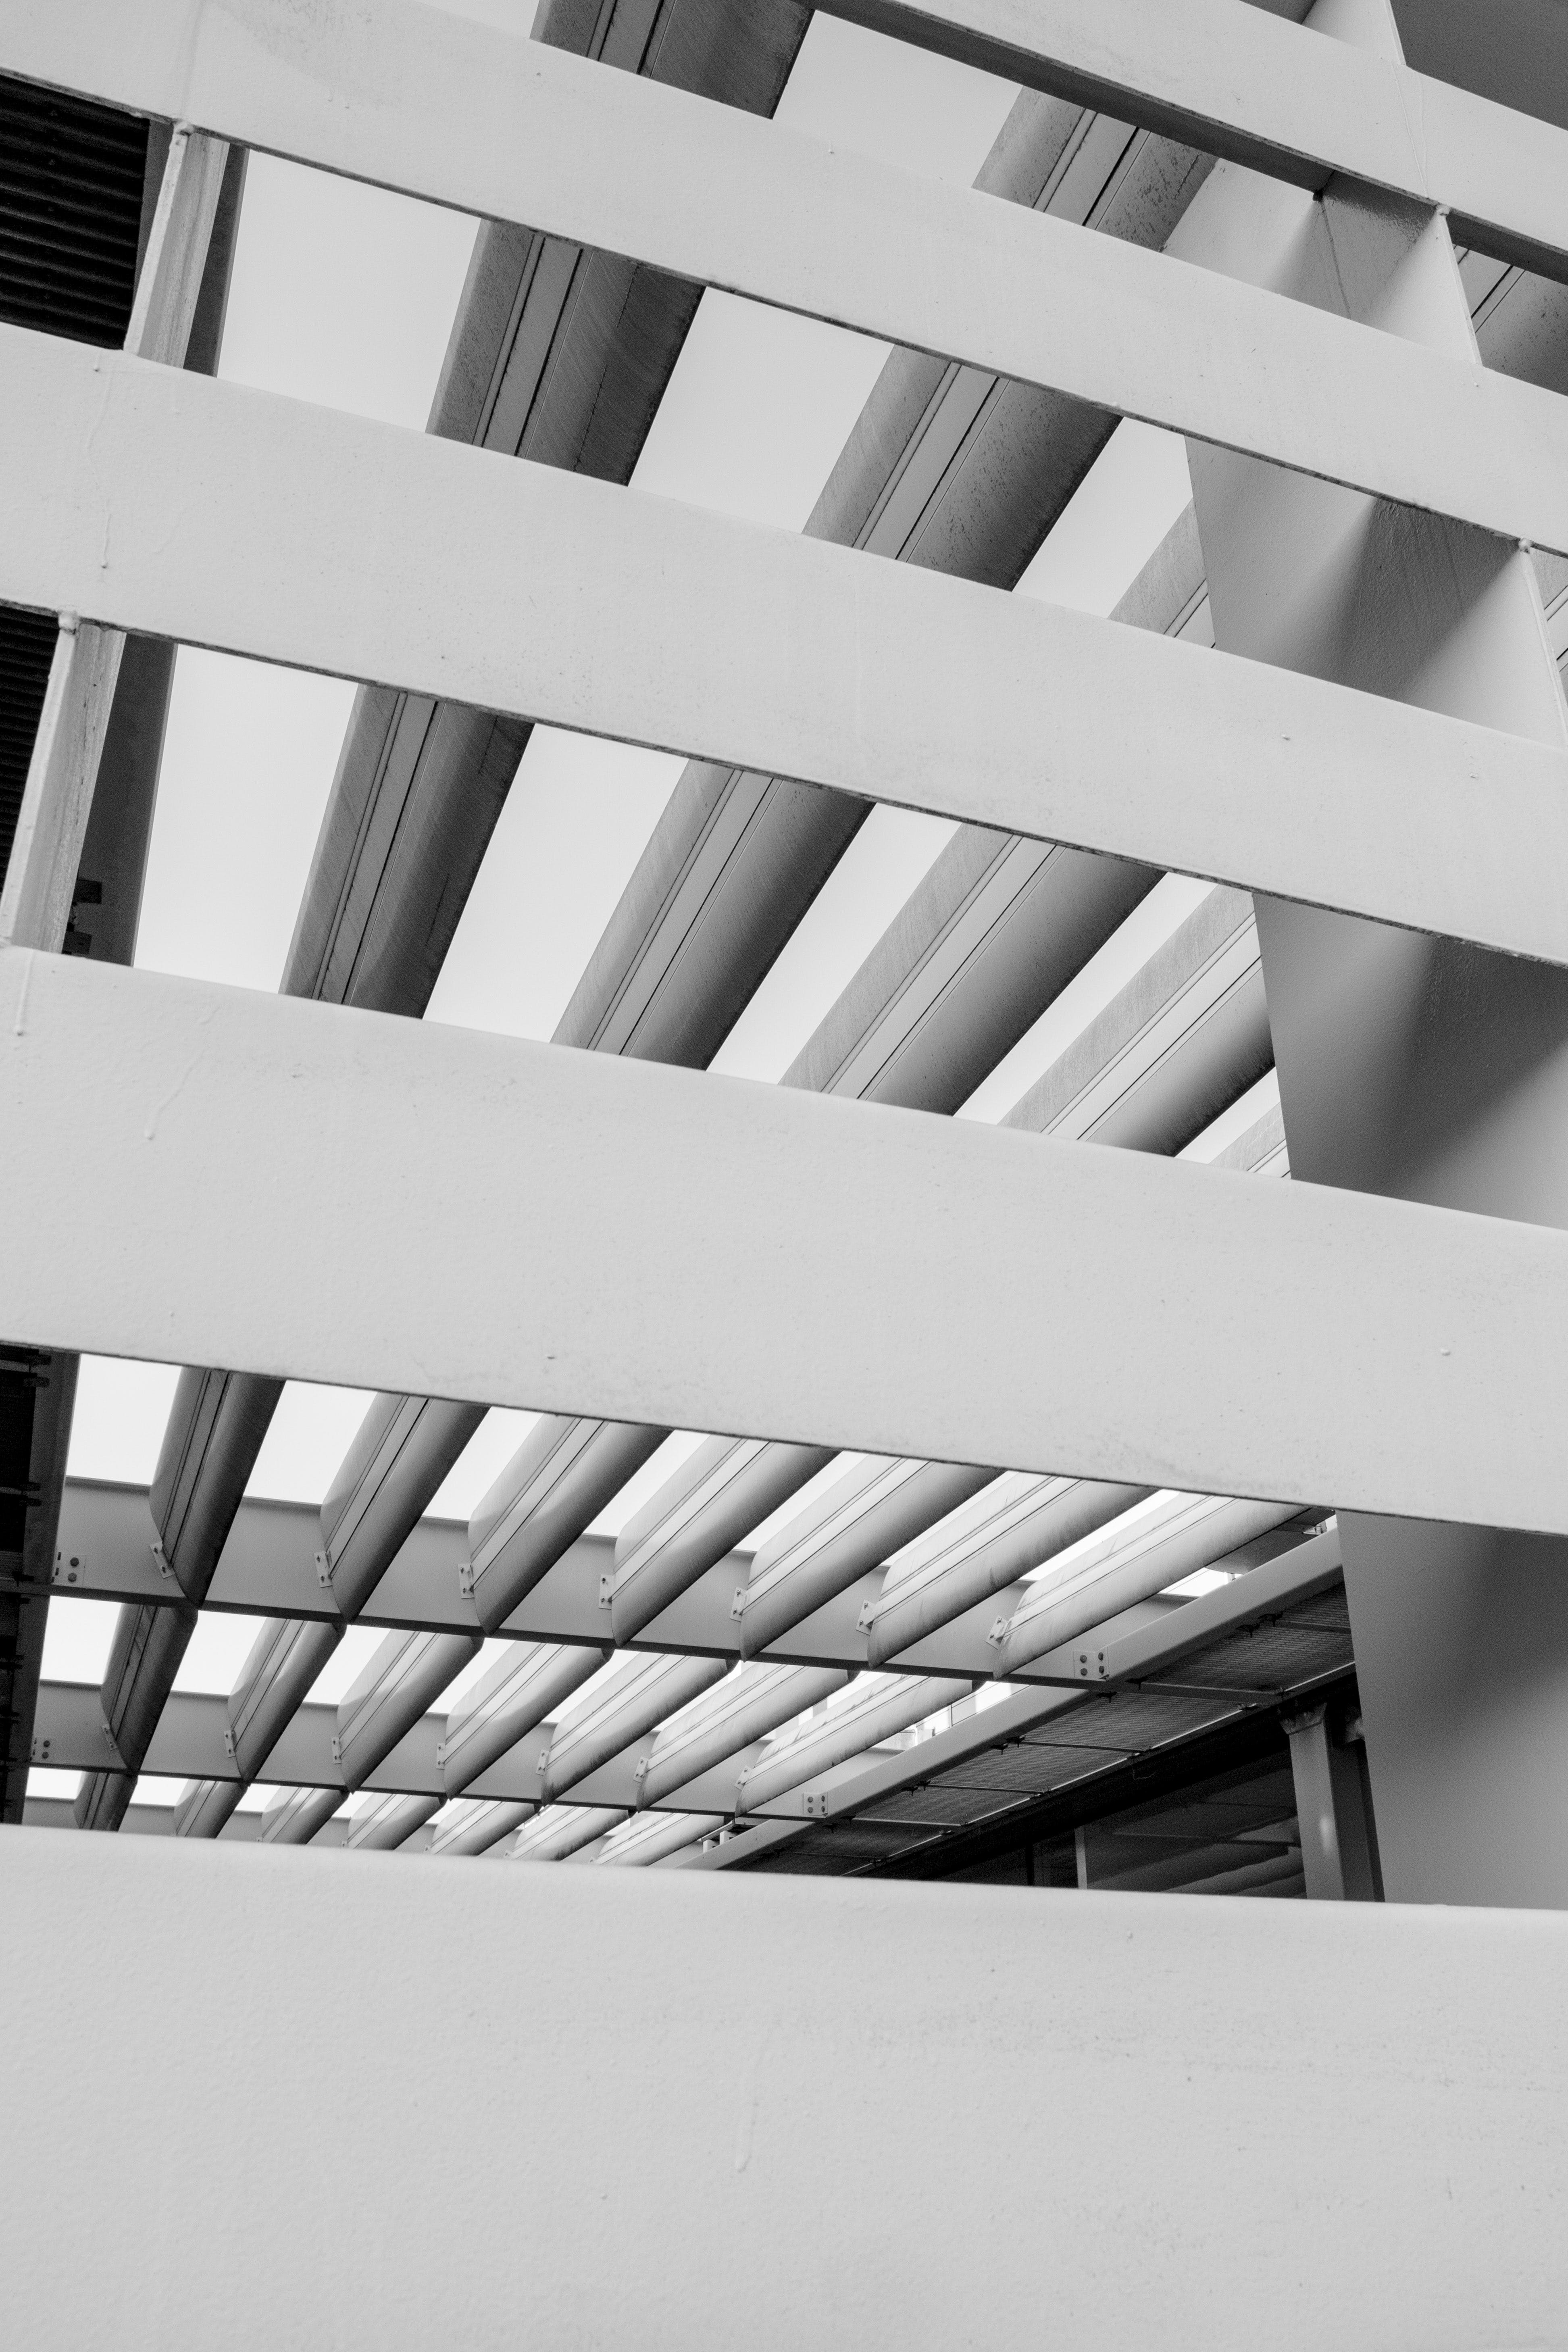 Free stock photo of architecture, black and white, lines, symmetry